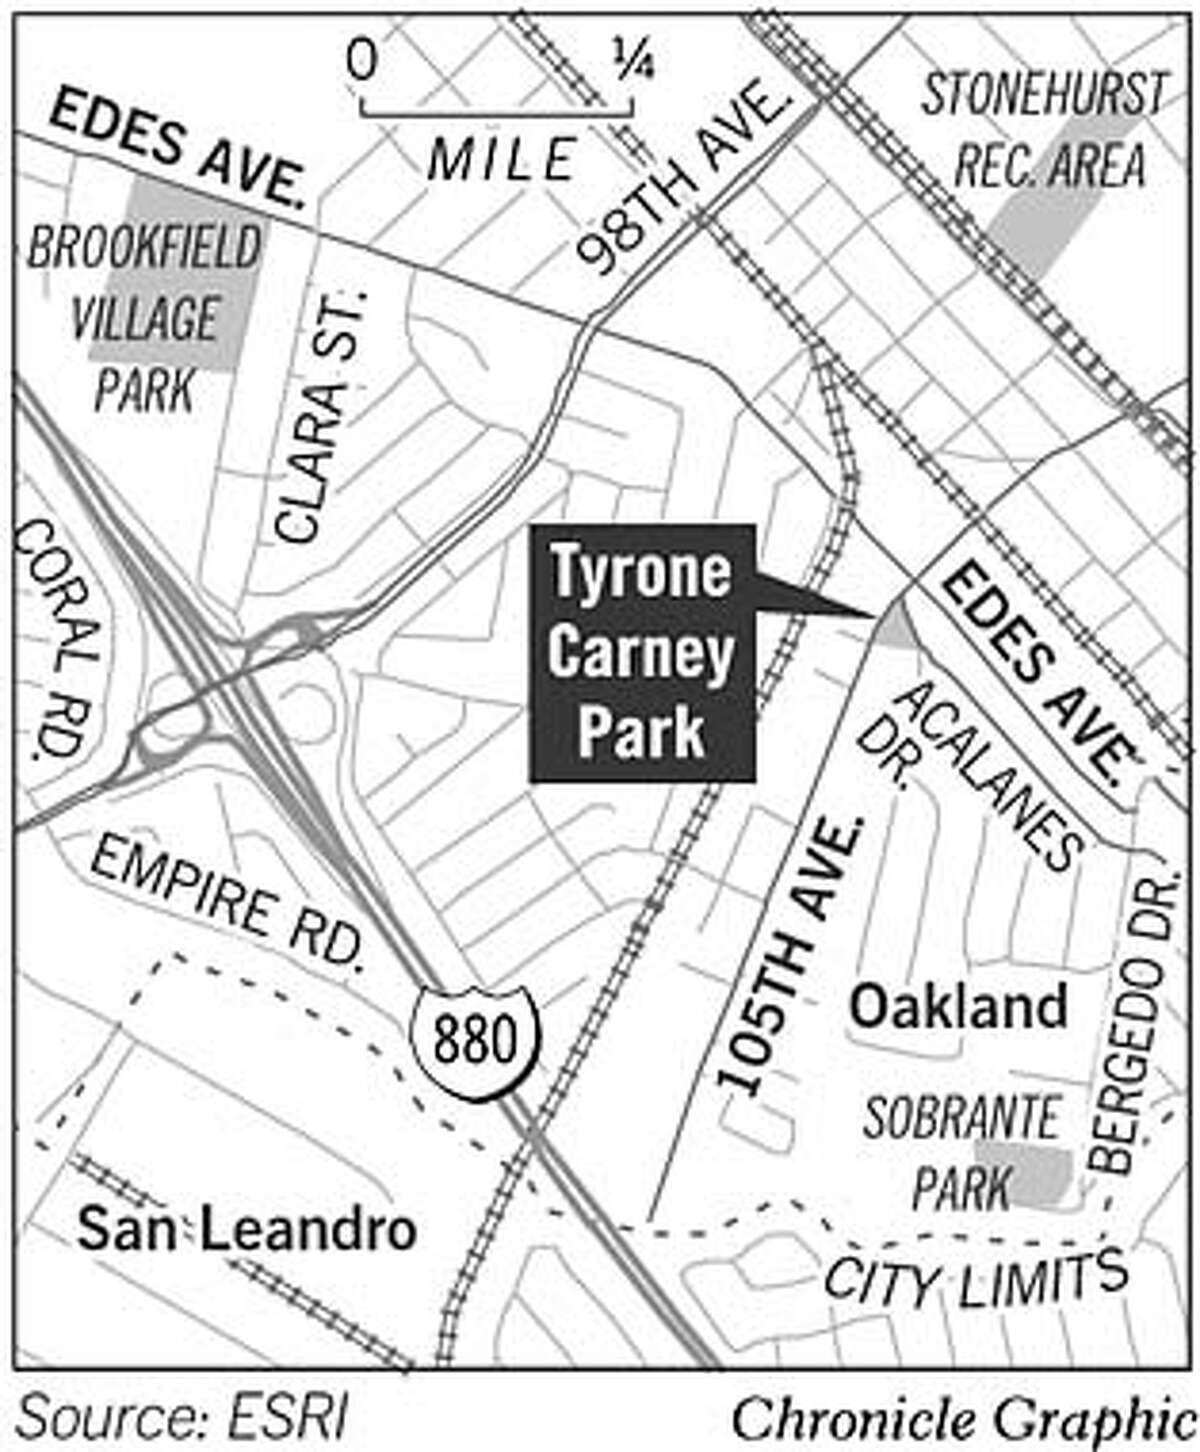 Tyrone Carney Park. Chronicle Graphic